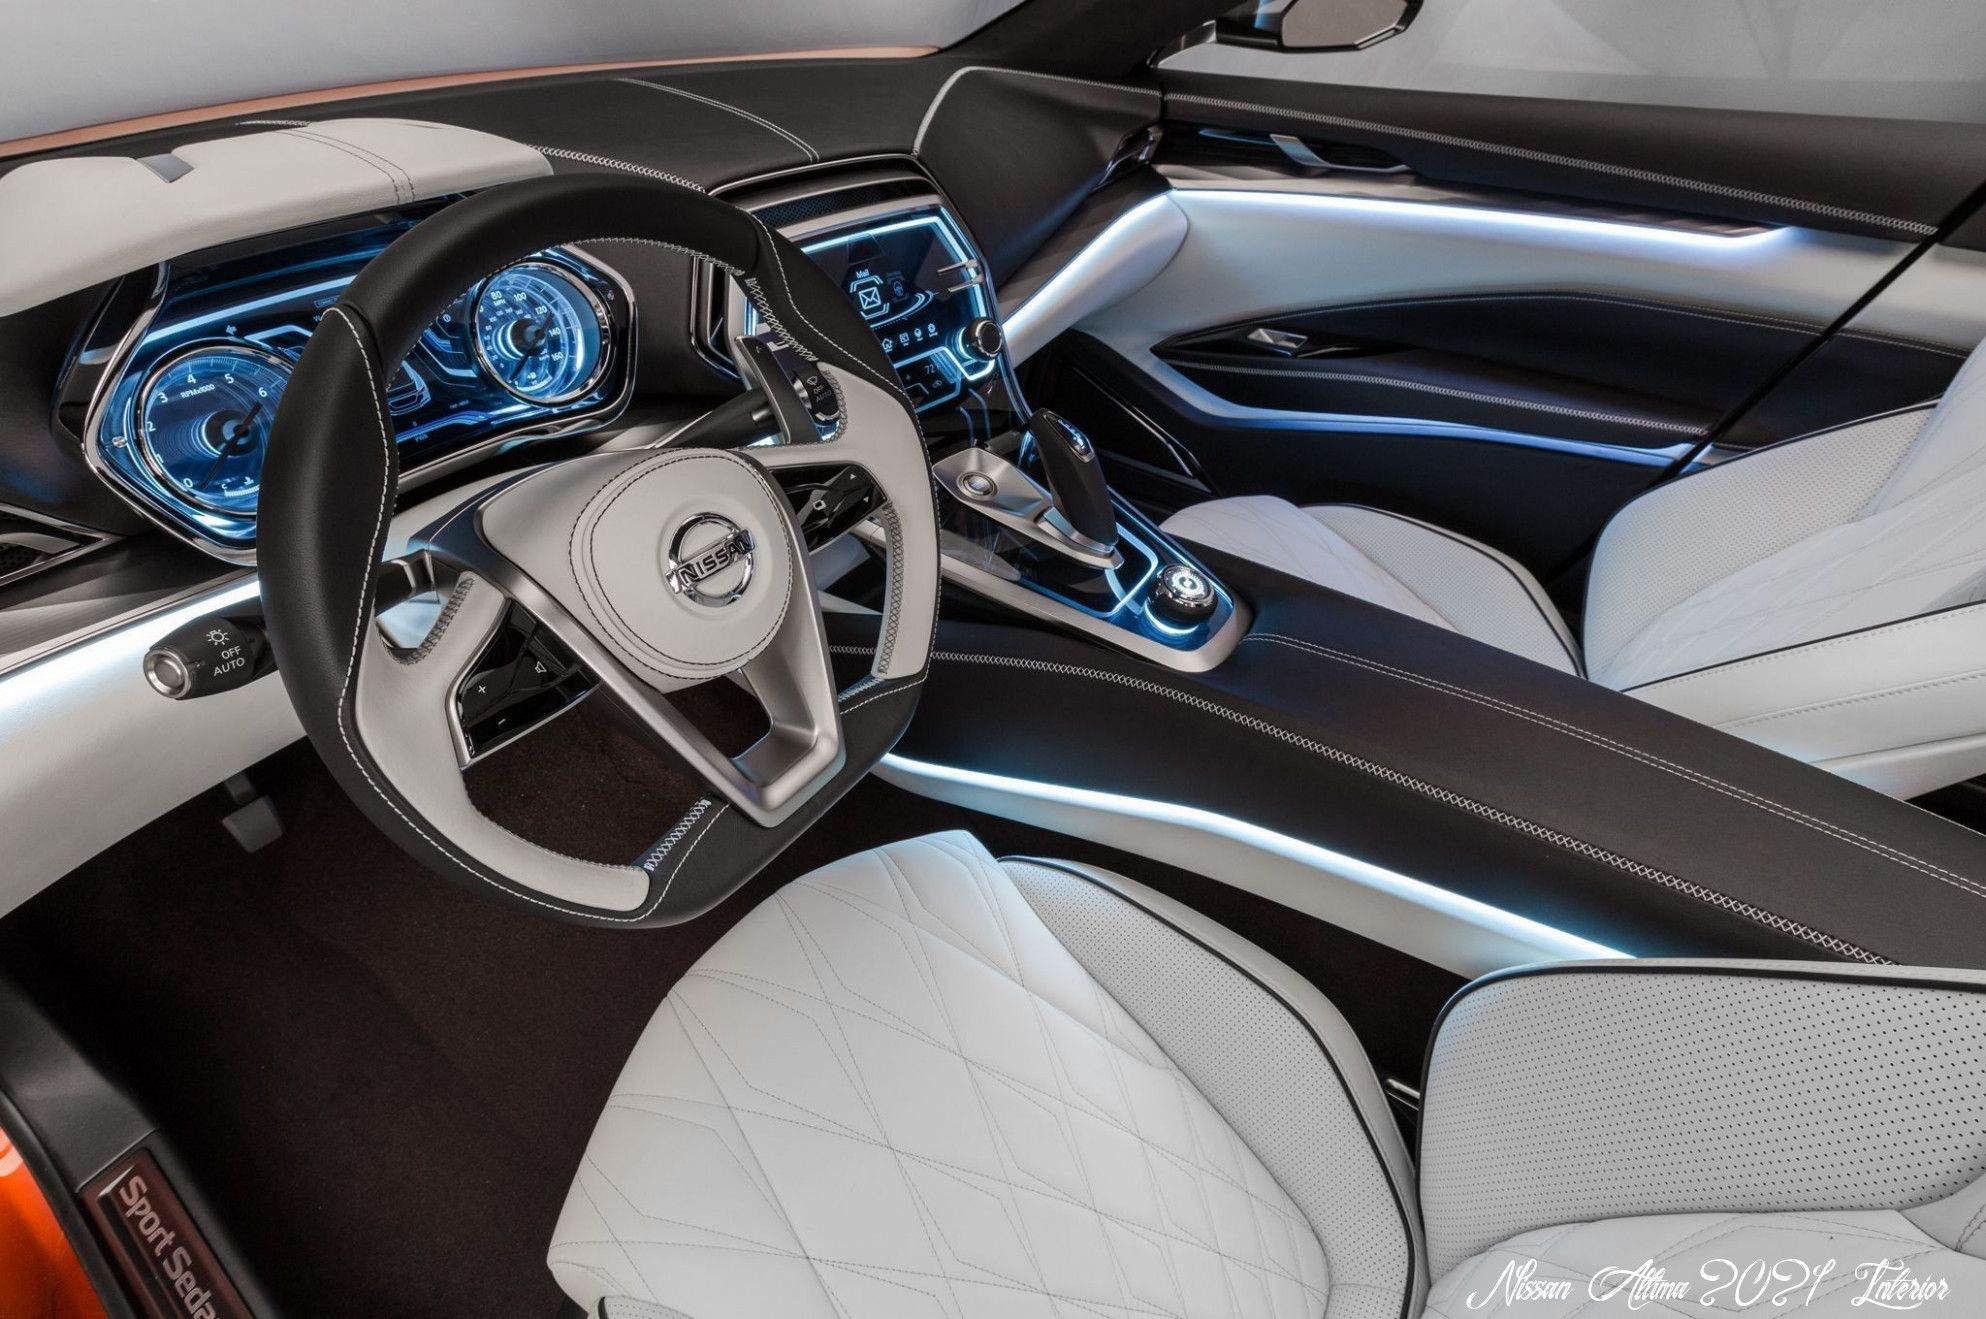 Nissan Altima 2021 Interior Release Date And Concept In 2020 Altima Nissan Altima Coupe Nissan The nissan sentra has long provided great value in the compact sedan segment, offering comfortable and reliable transportation at an excellent price. pinterest